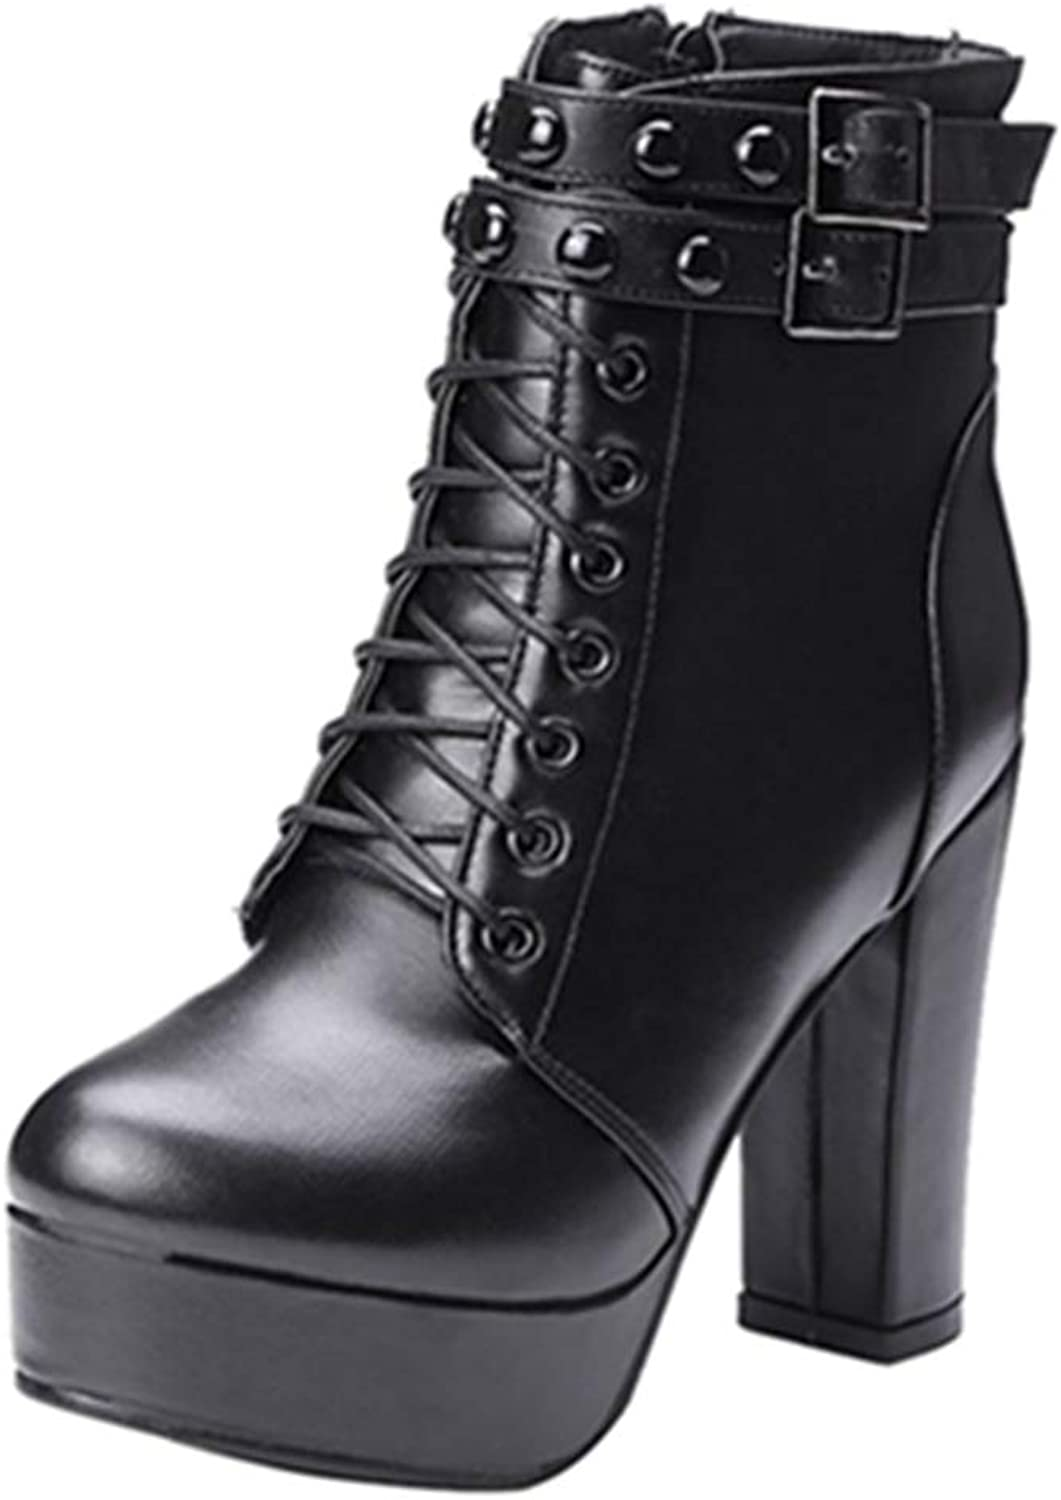 Smilice Women Fashion Ankle Boots Lita Boots